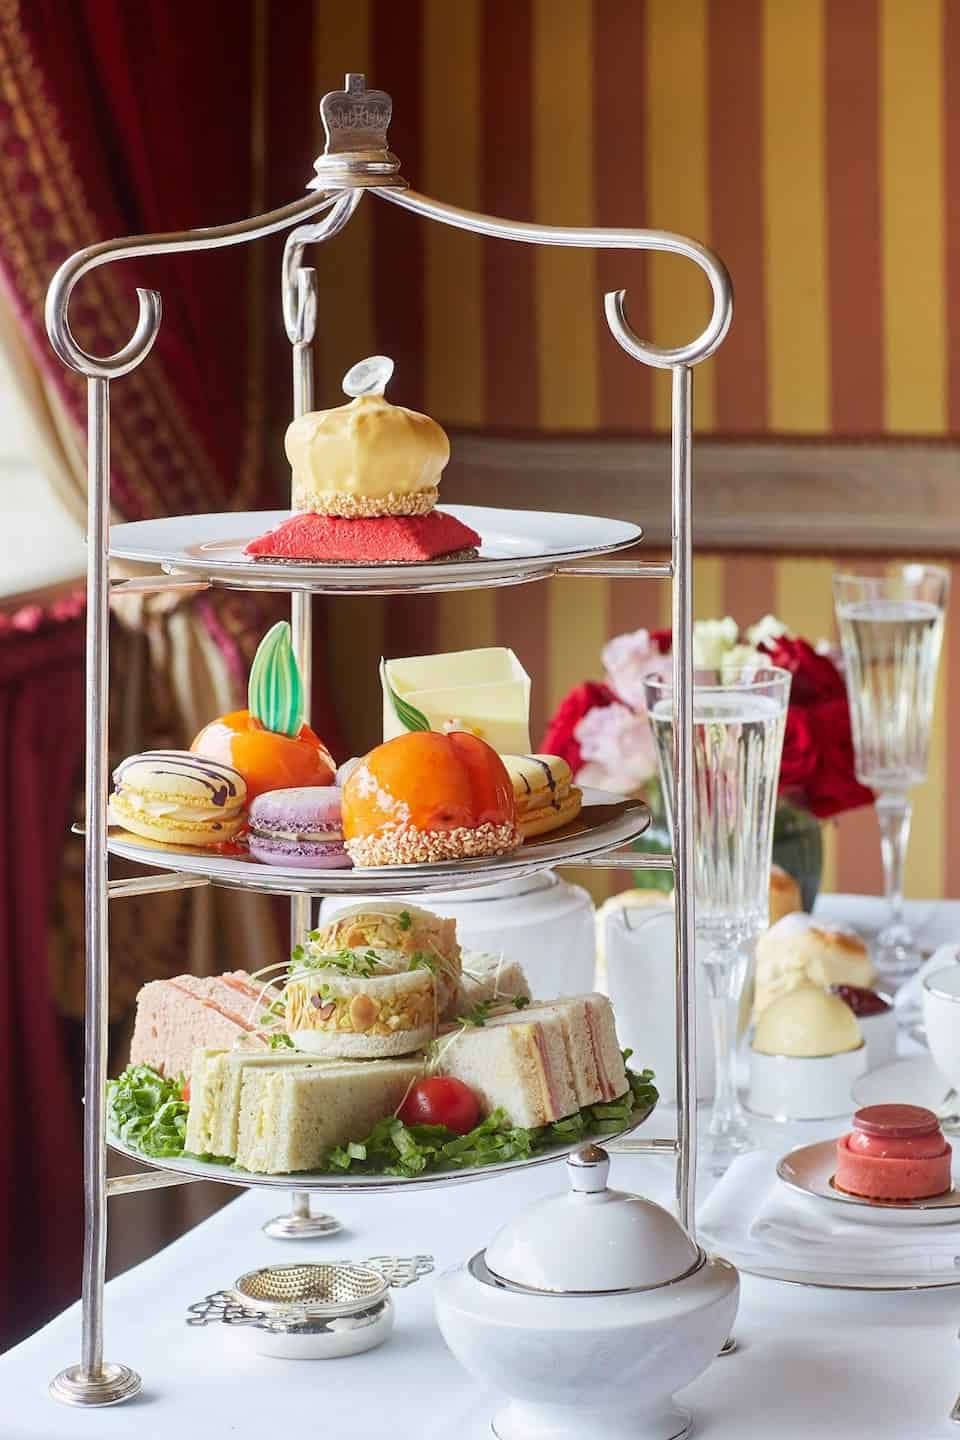 Best Dog-friendly Afternoon Teas in London - Rubens at The Palace Tea